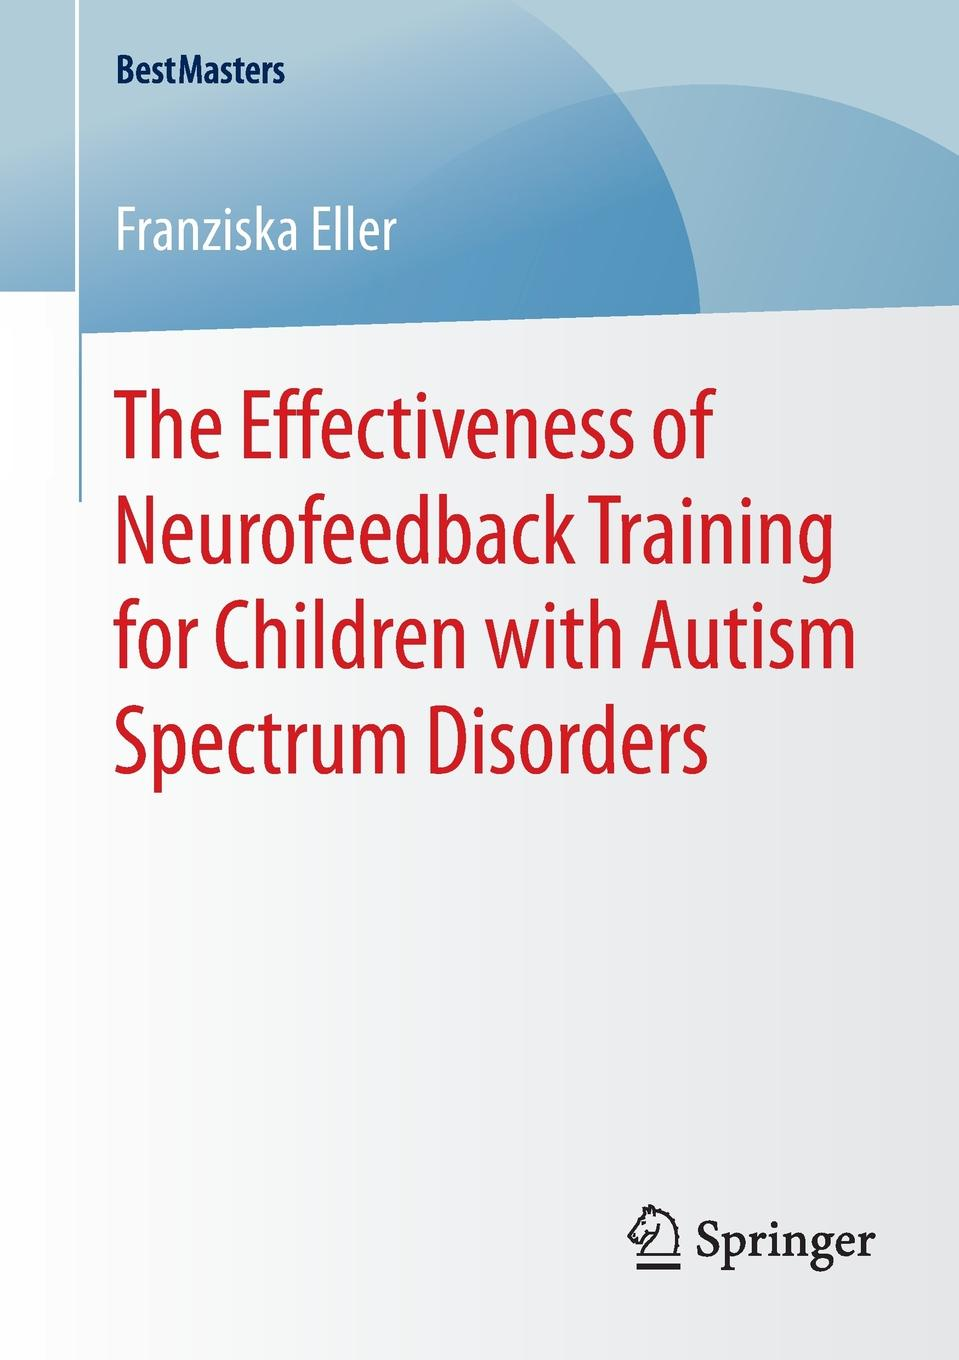 Franziska Eller The Effectiveness of Neurofeedback Training for Children with Autism Spectrum Disorders ventola pamela e essentials of autism spectrum disorders evaluation and assessment